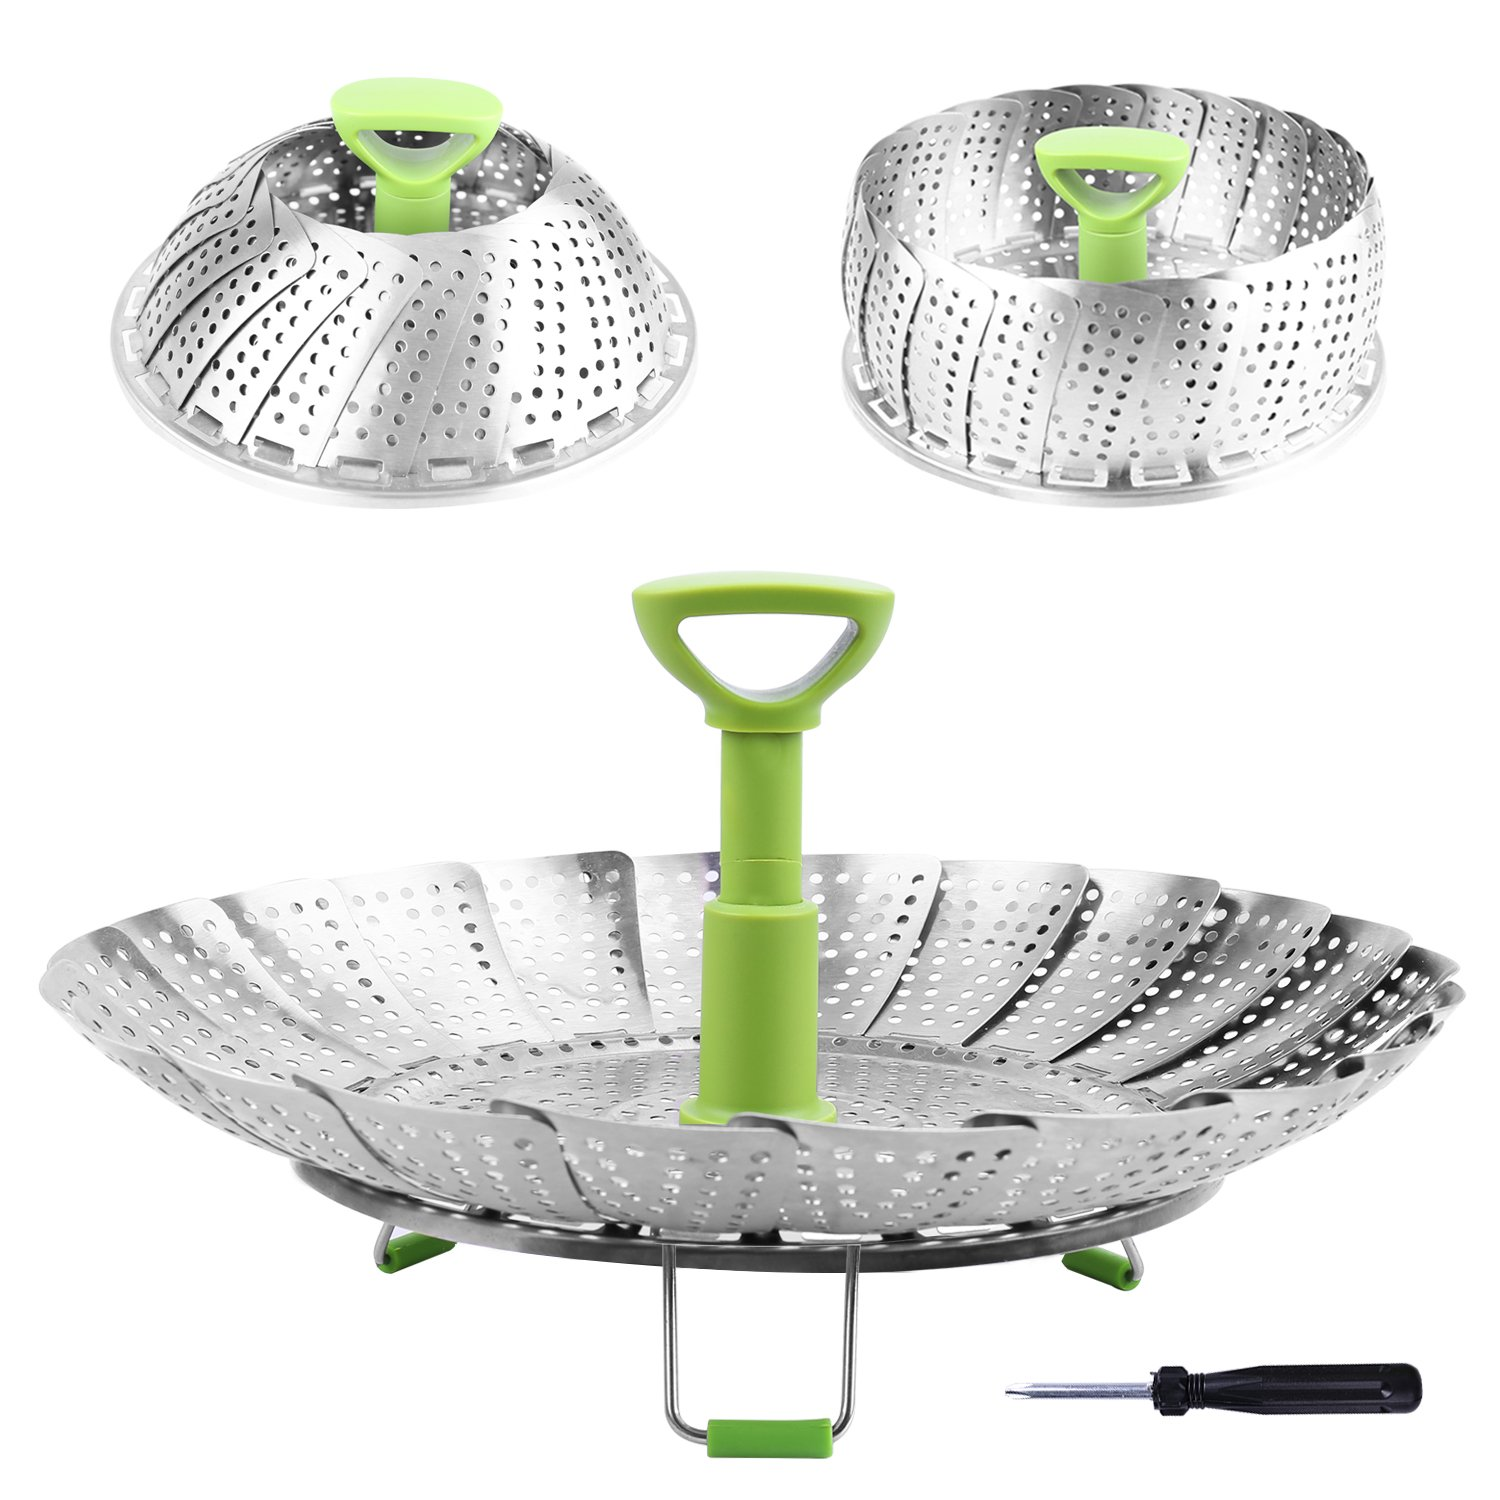 Steamer Basket Stainless Steel Vegetable Steamer Basket Folding Steamer Insert for Veggie Fish Seafood Cooking, Expandable to Fit Various Size Pot (6'' to 11'')